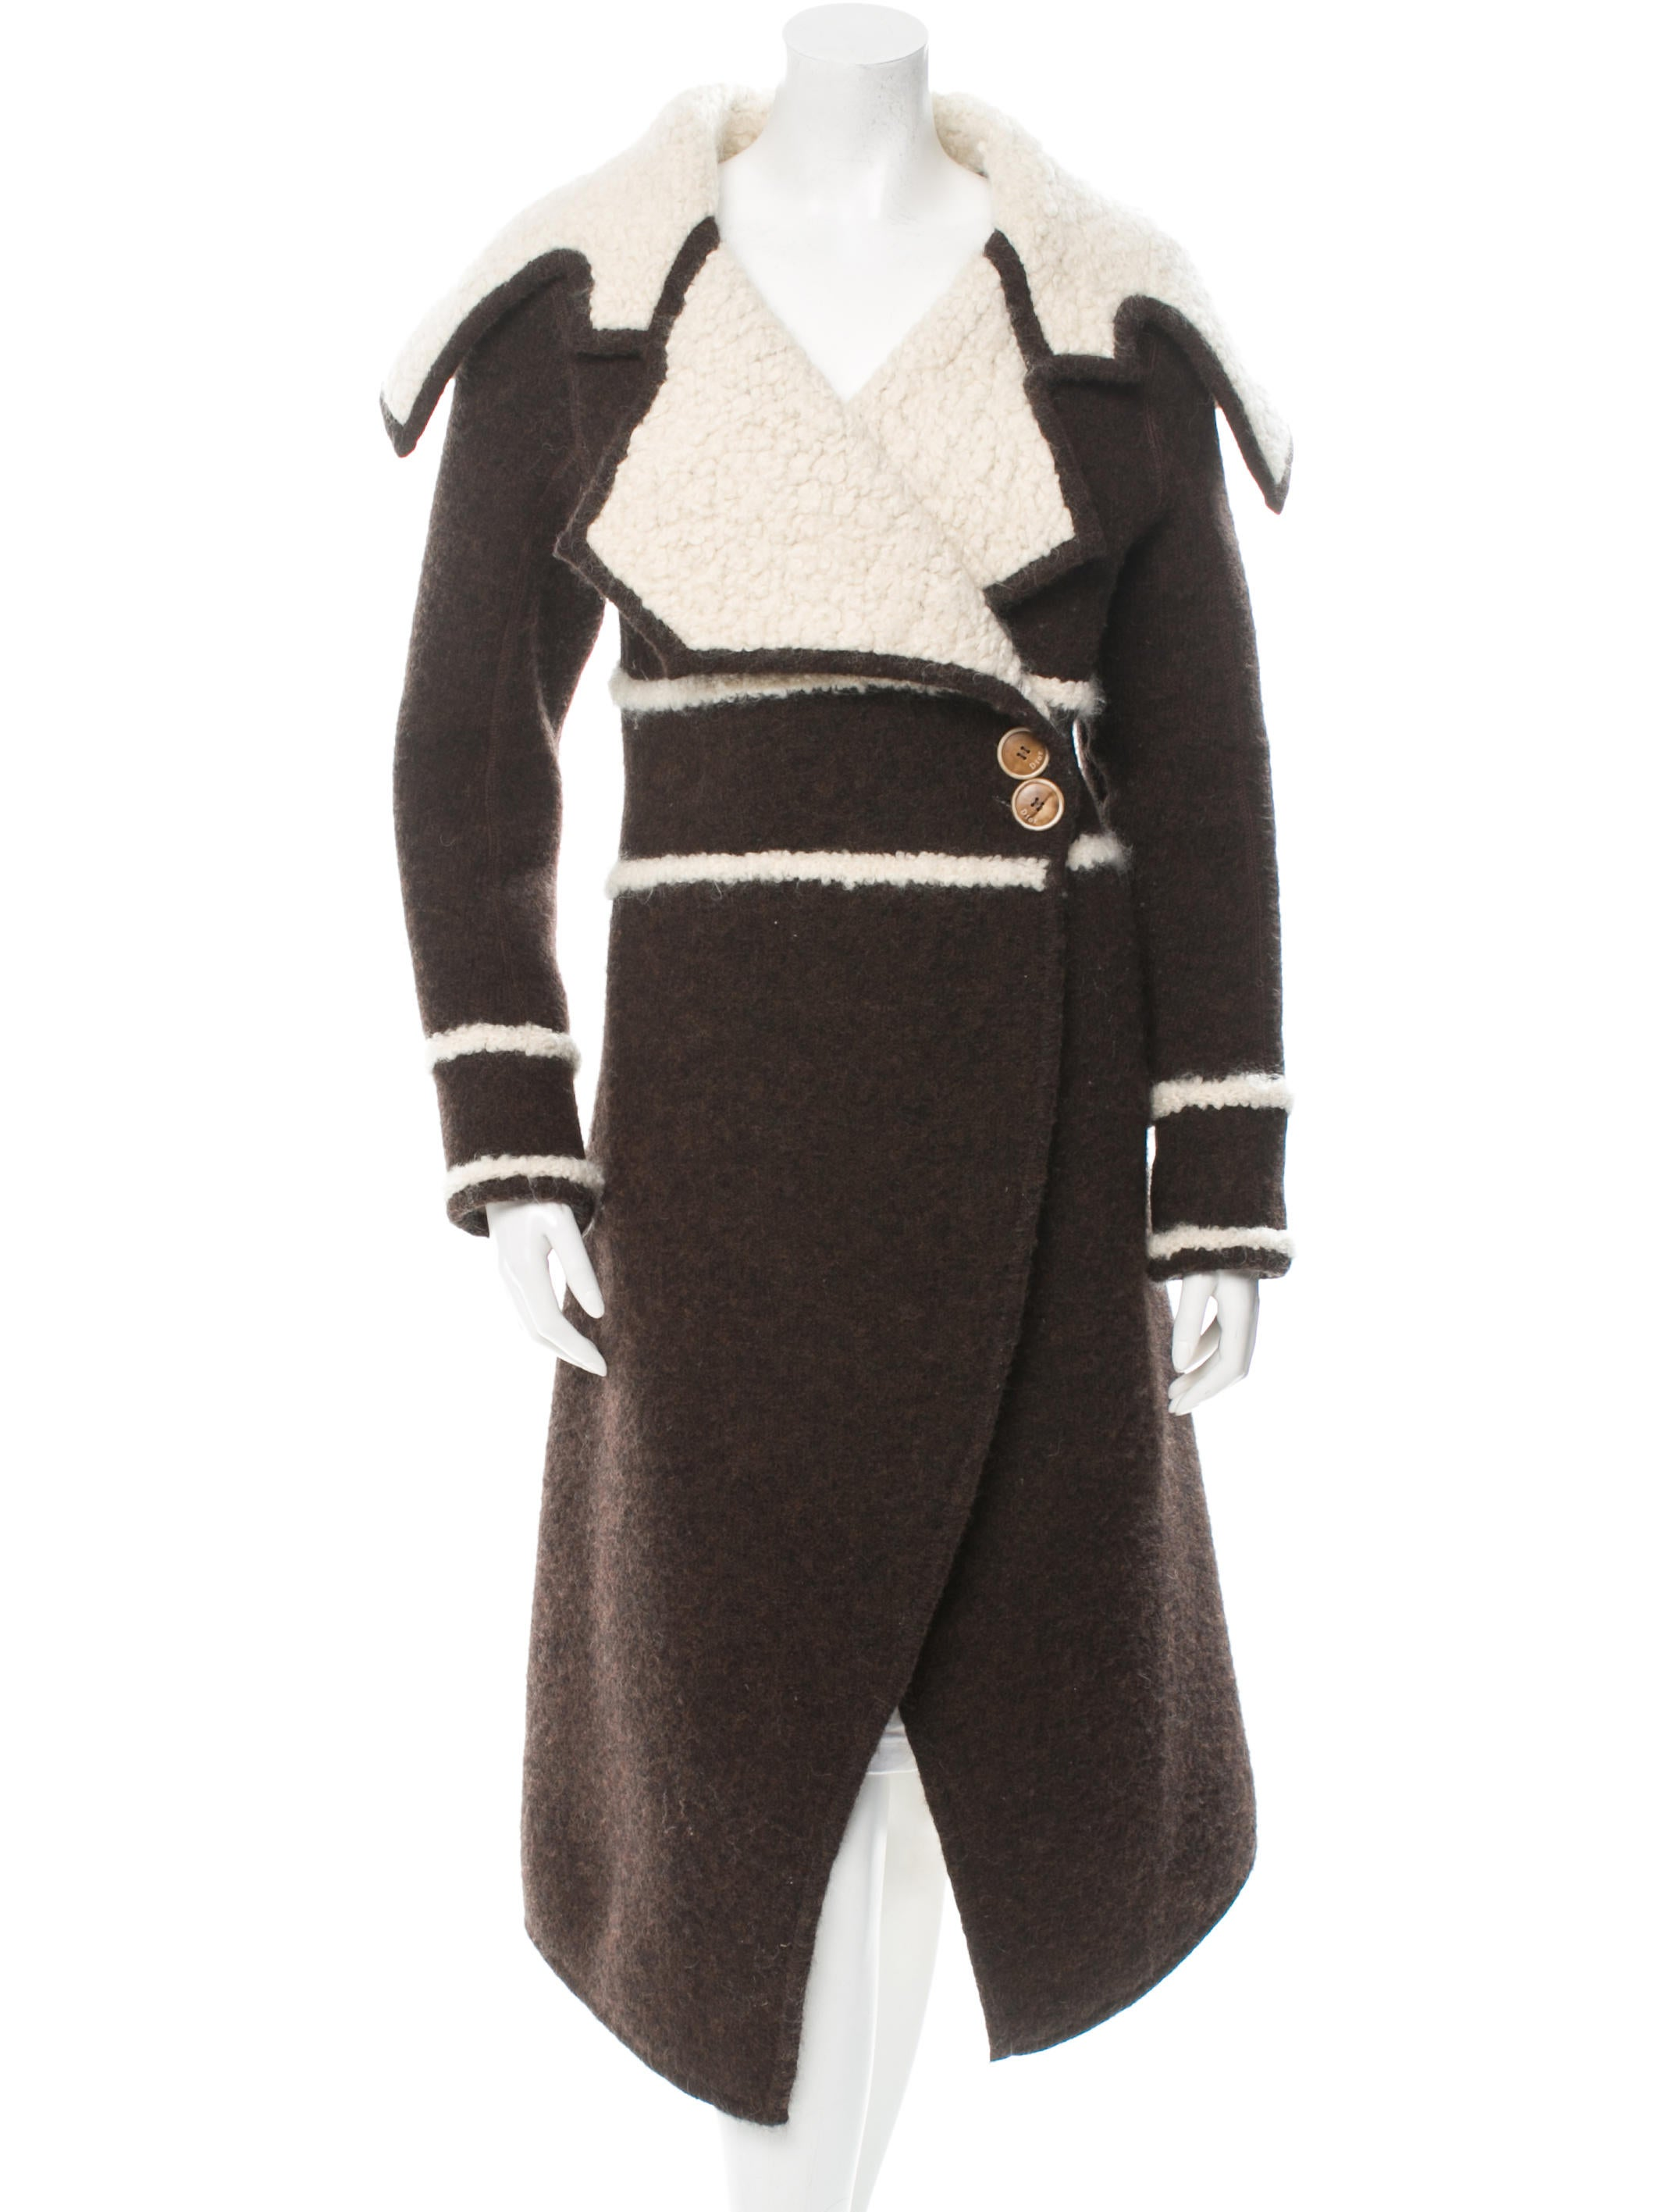 Christian Dior Shearling Coat - Clothing - CHR34307 | The RealReal